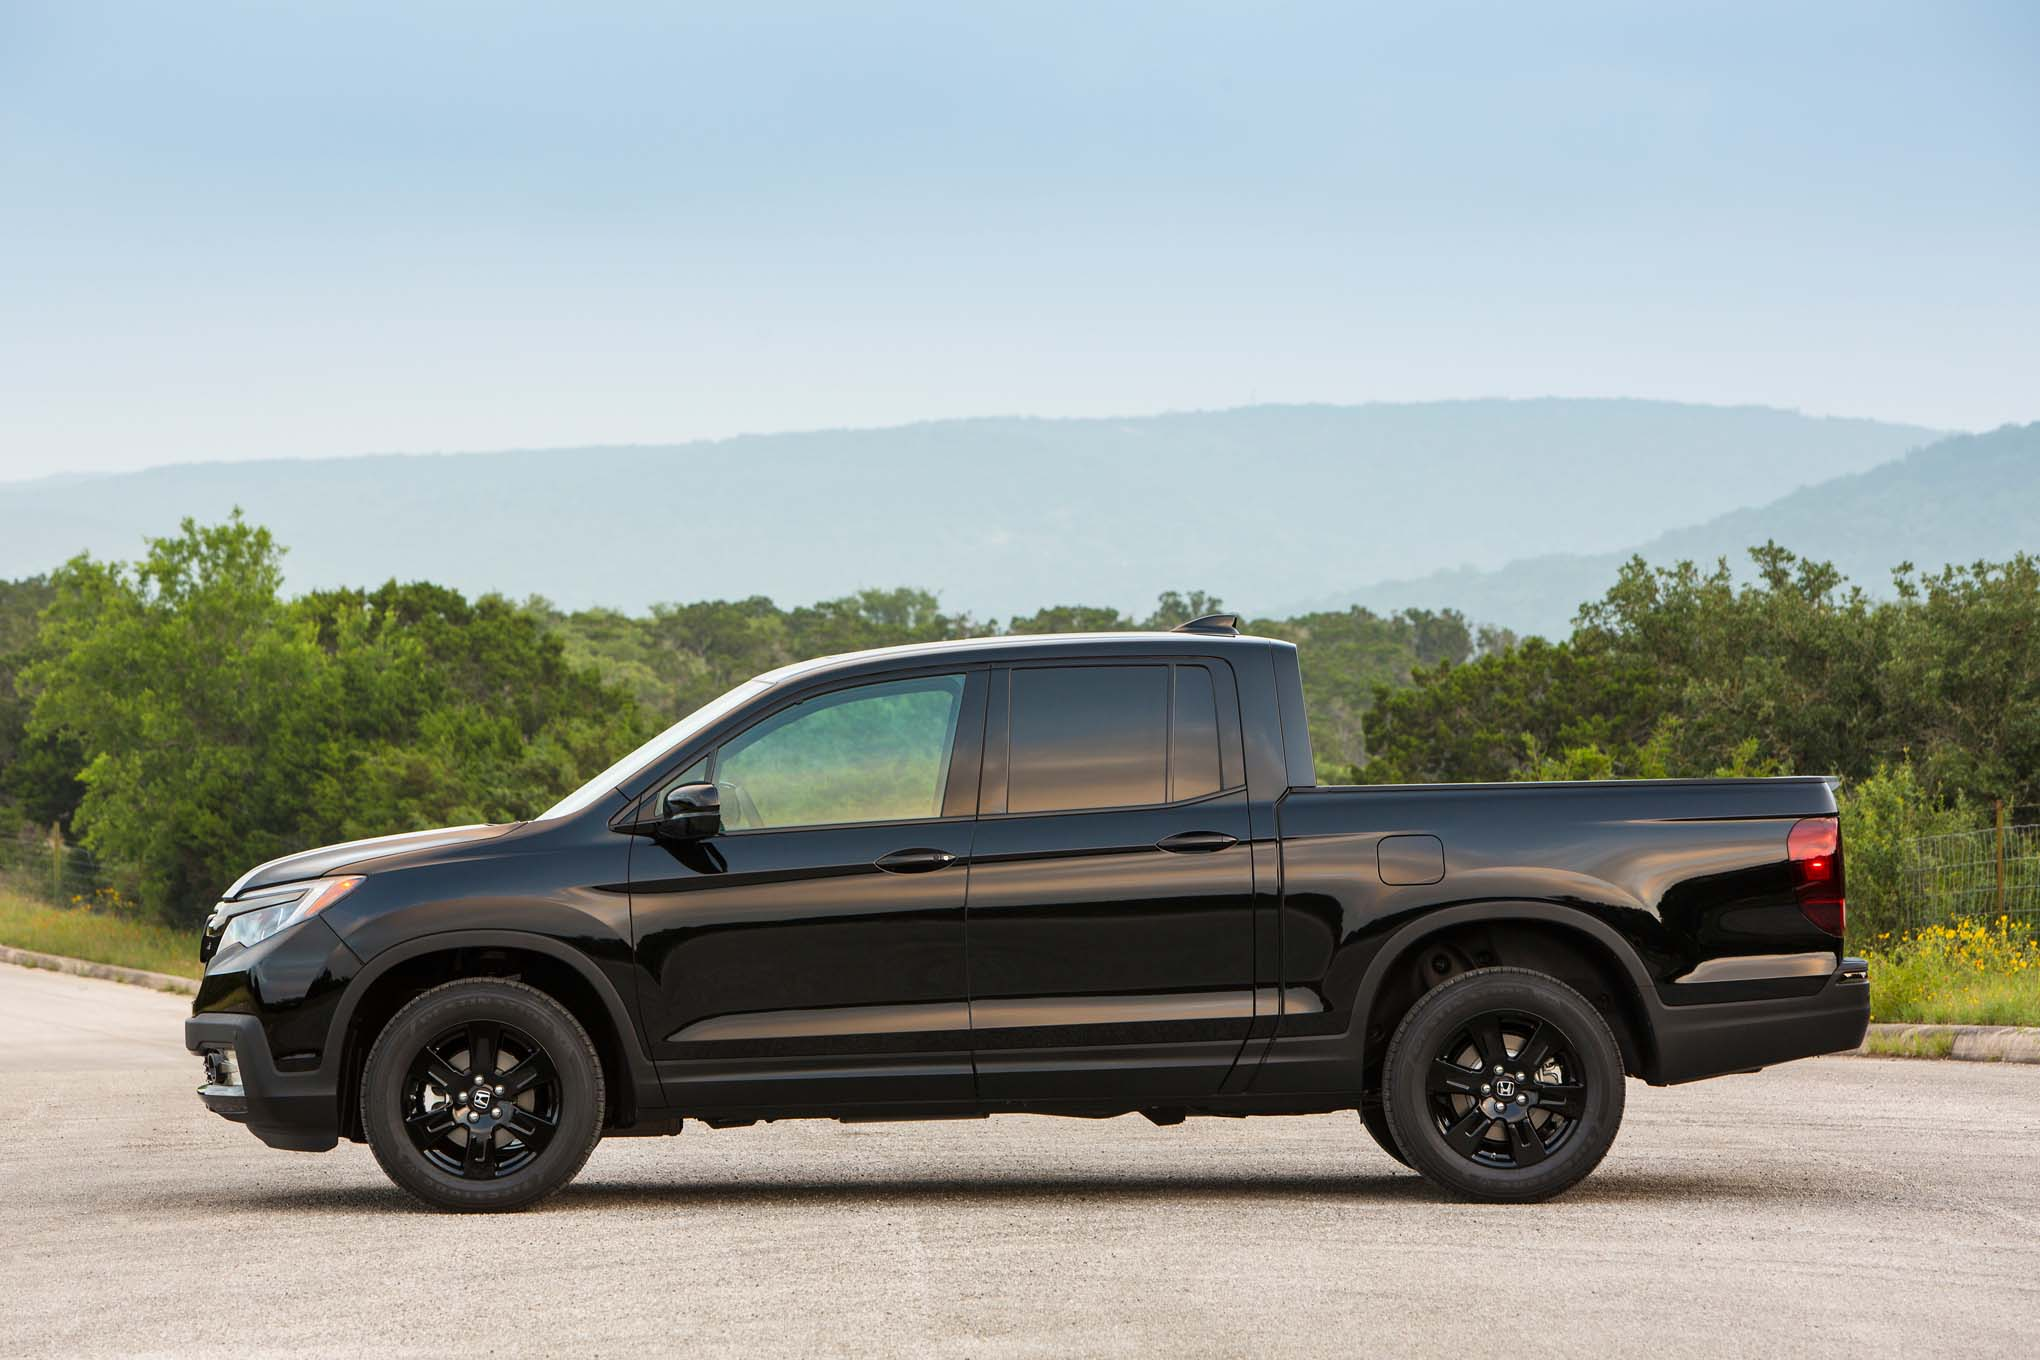 Ridgeline Black Edition The Ugliest Truck I Have Ever Seen Page 3 Honda Owners Club Forums